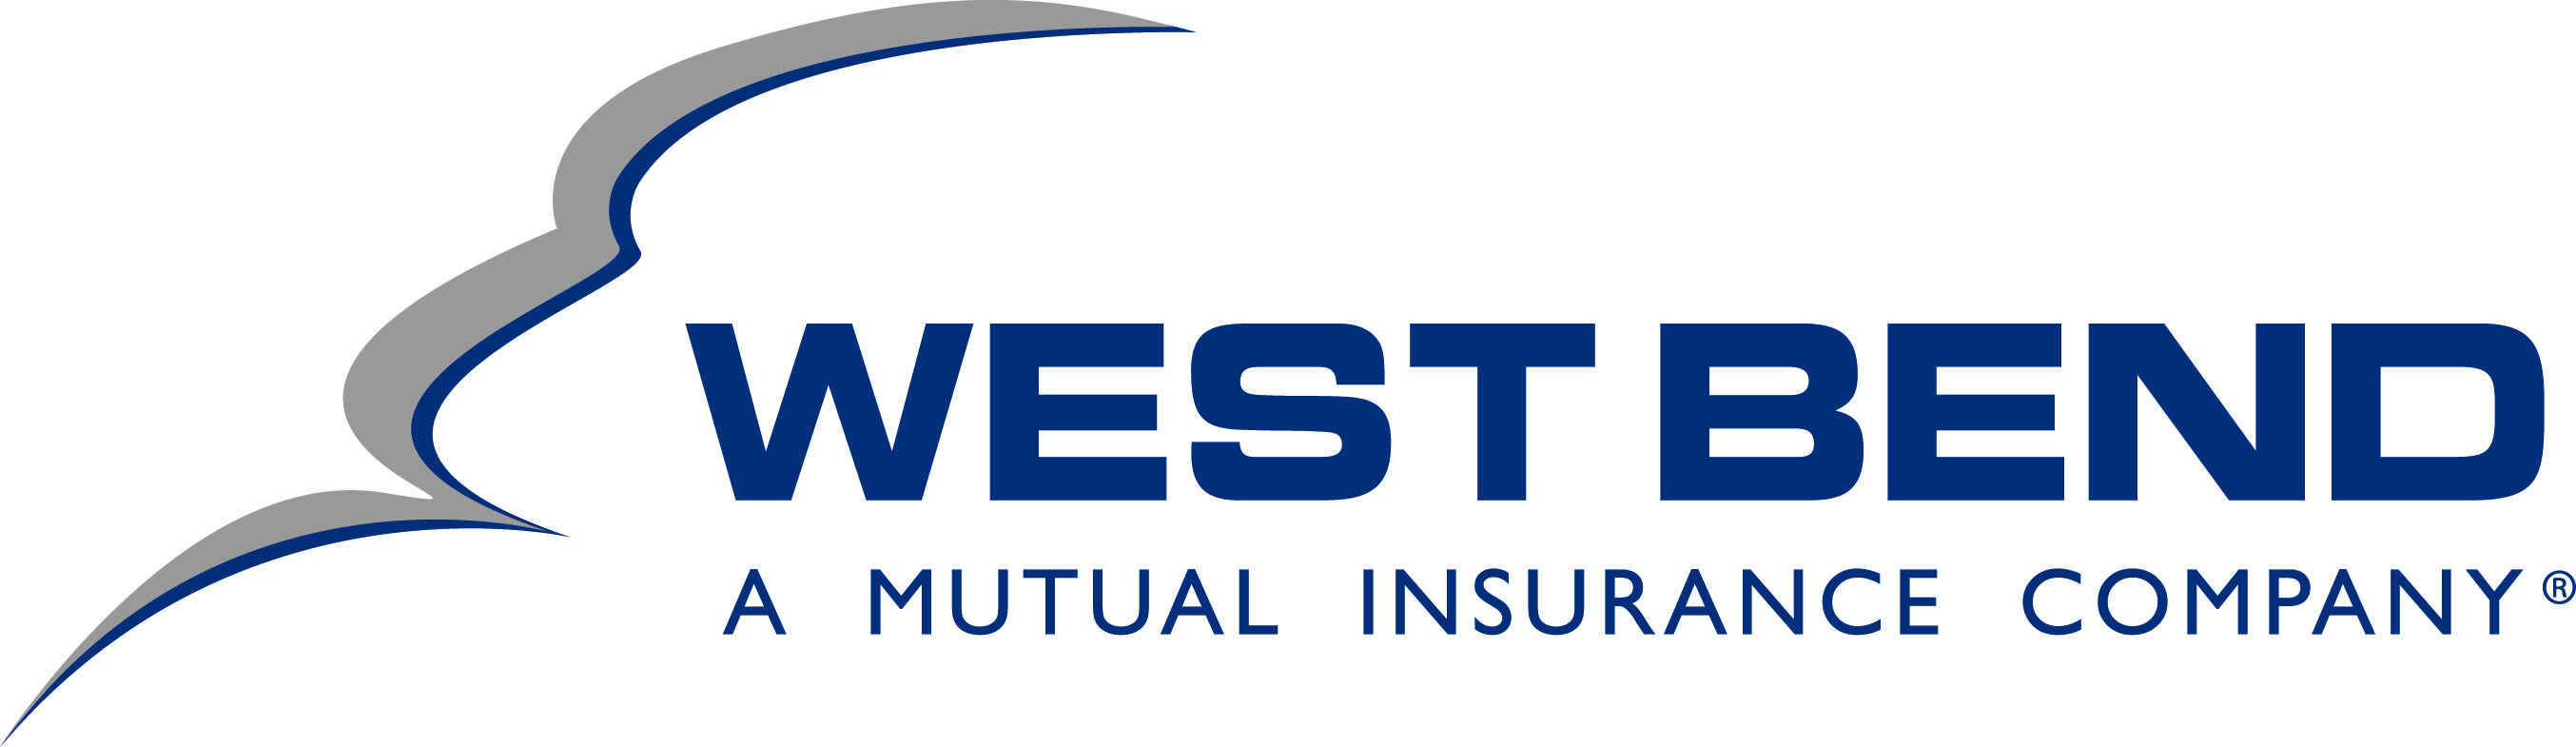 west bend insurance st. charles st. peters st. louis ofallon missouri